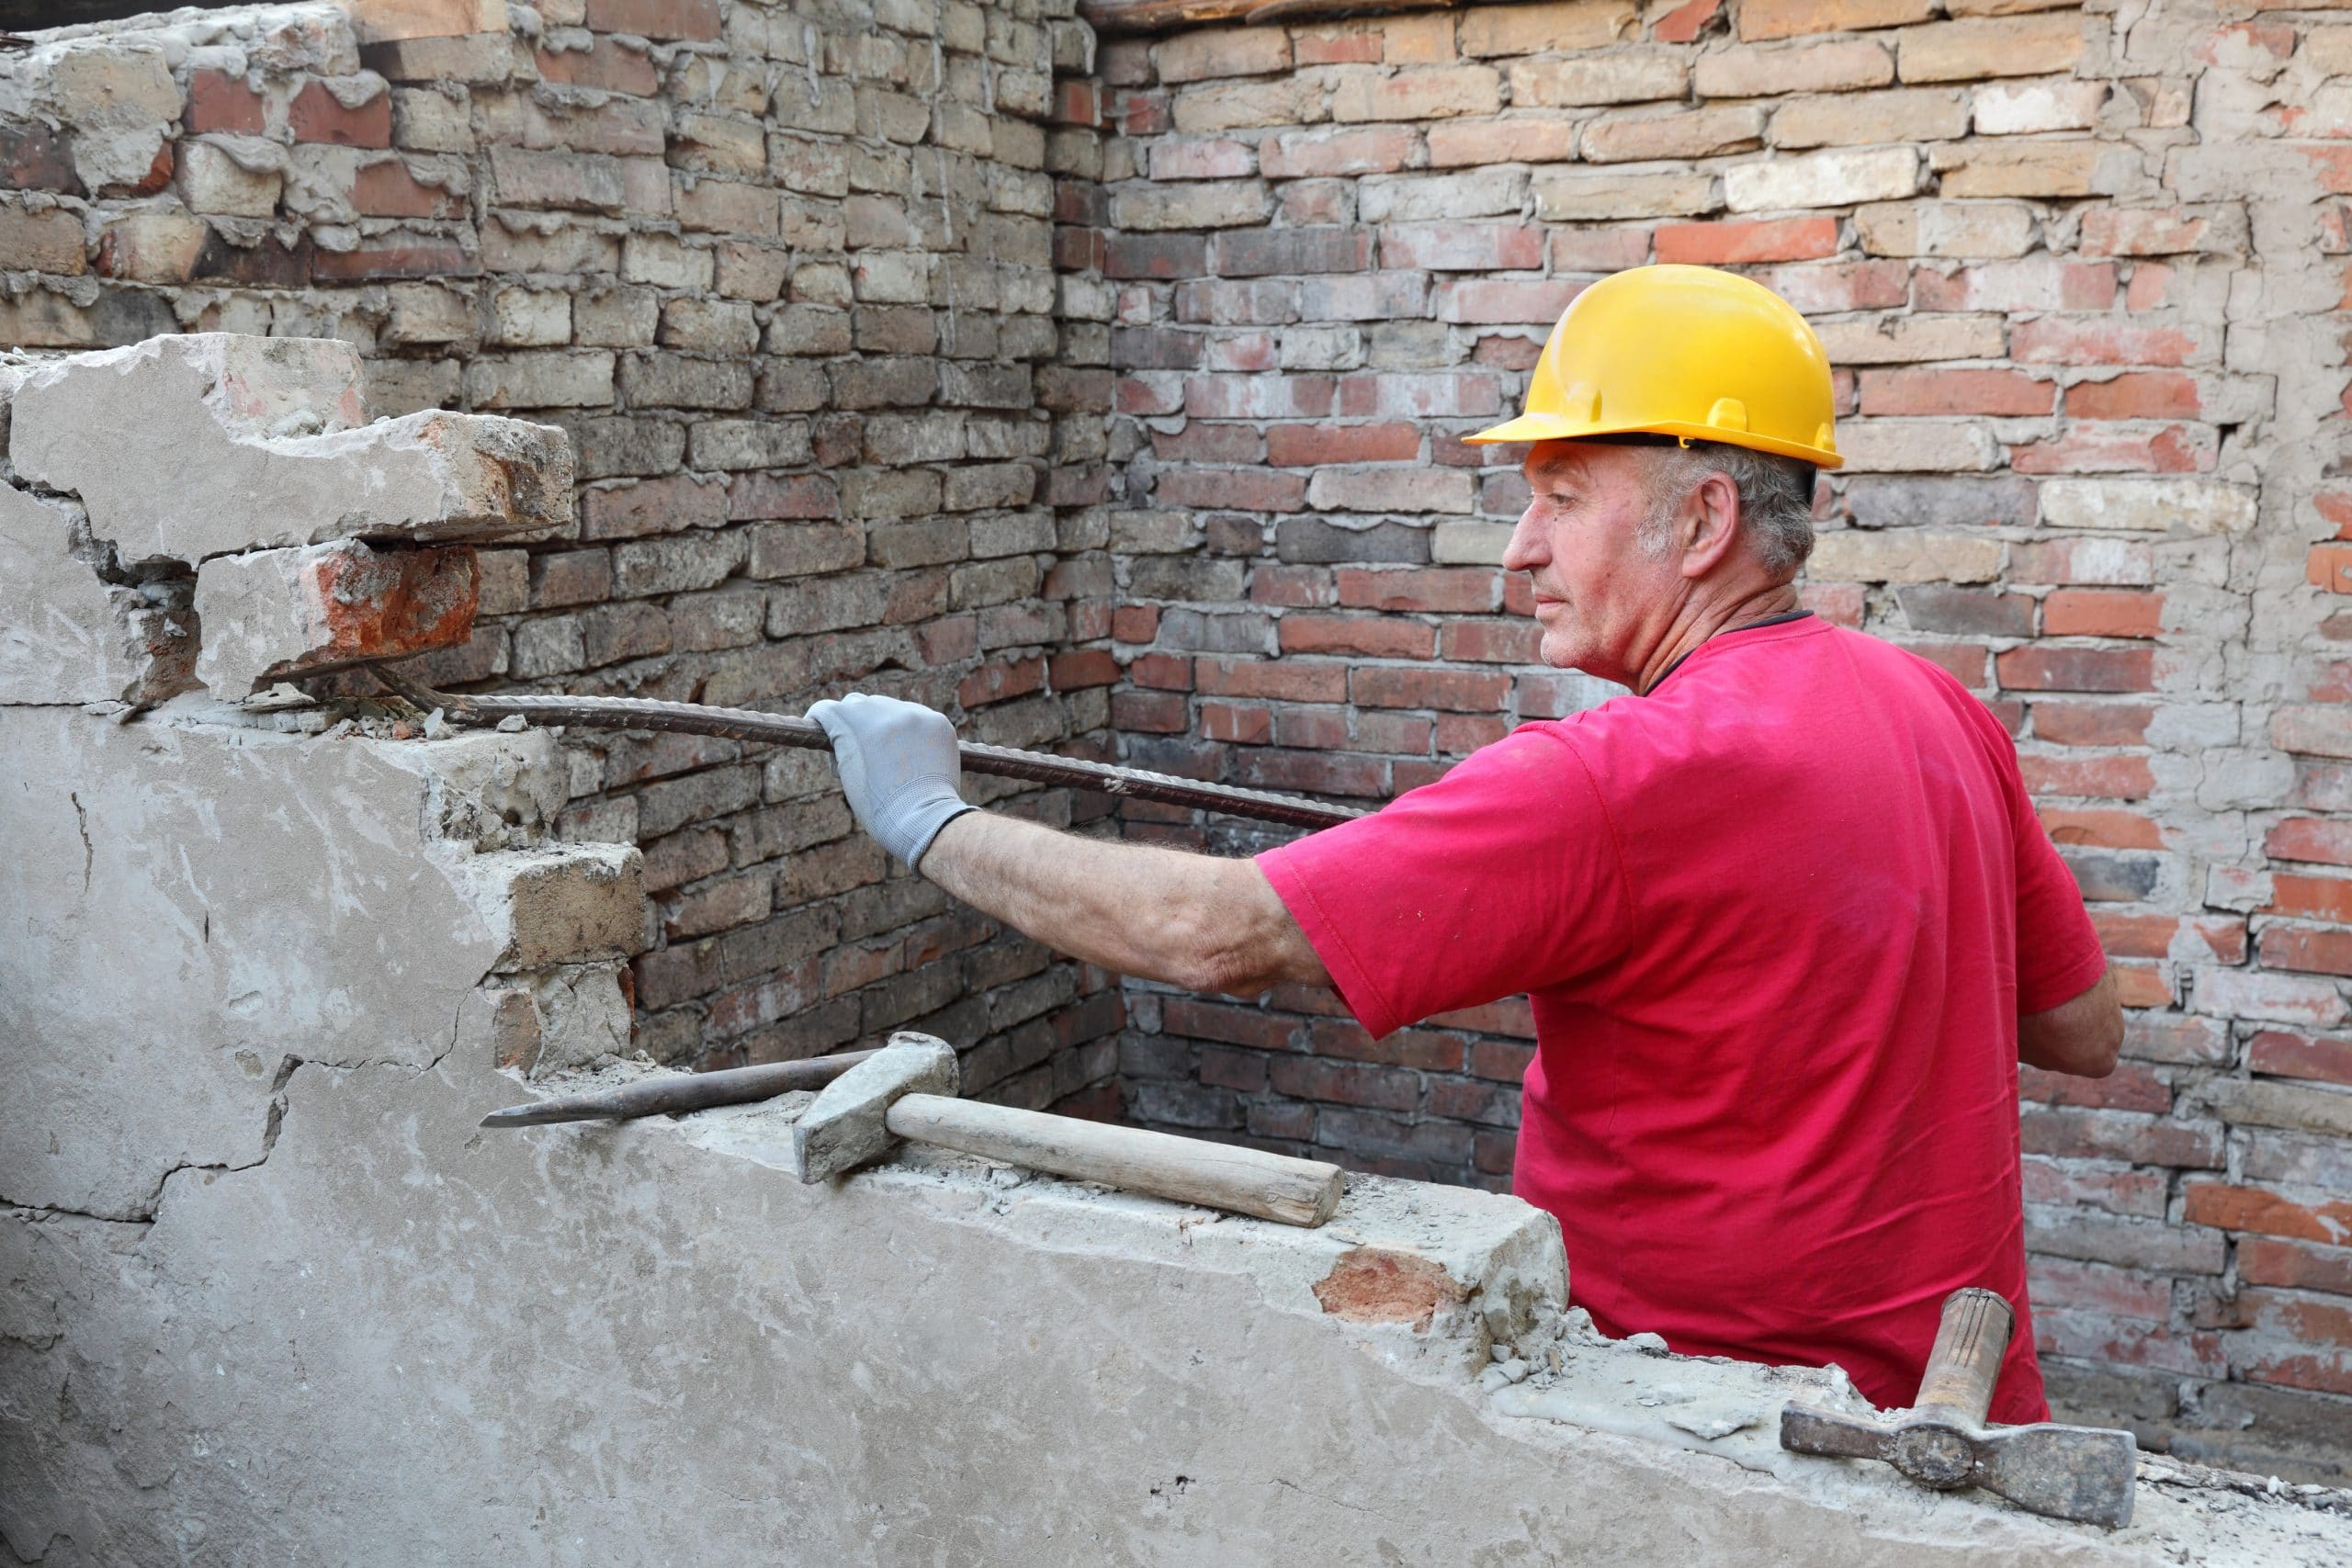 Workman manually demolishing wall to reclaim the bricks